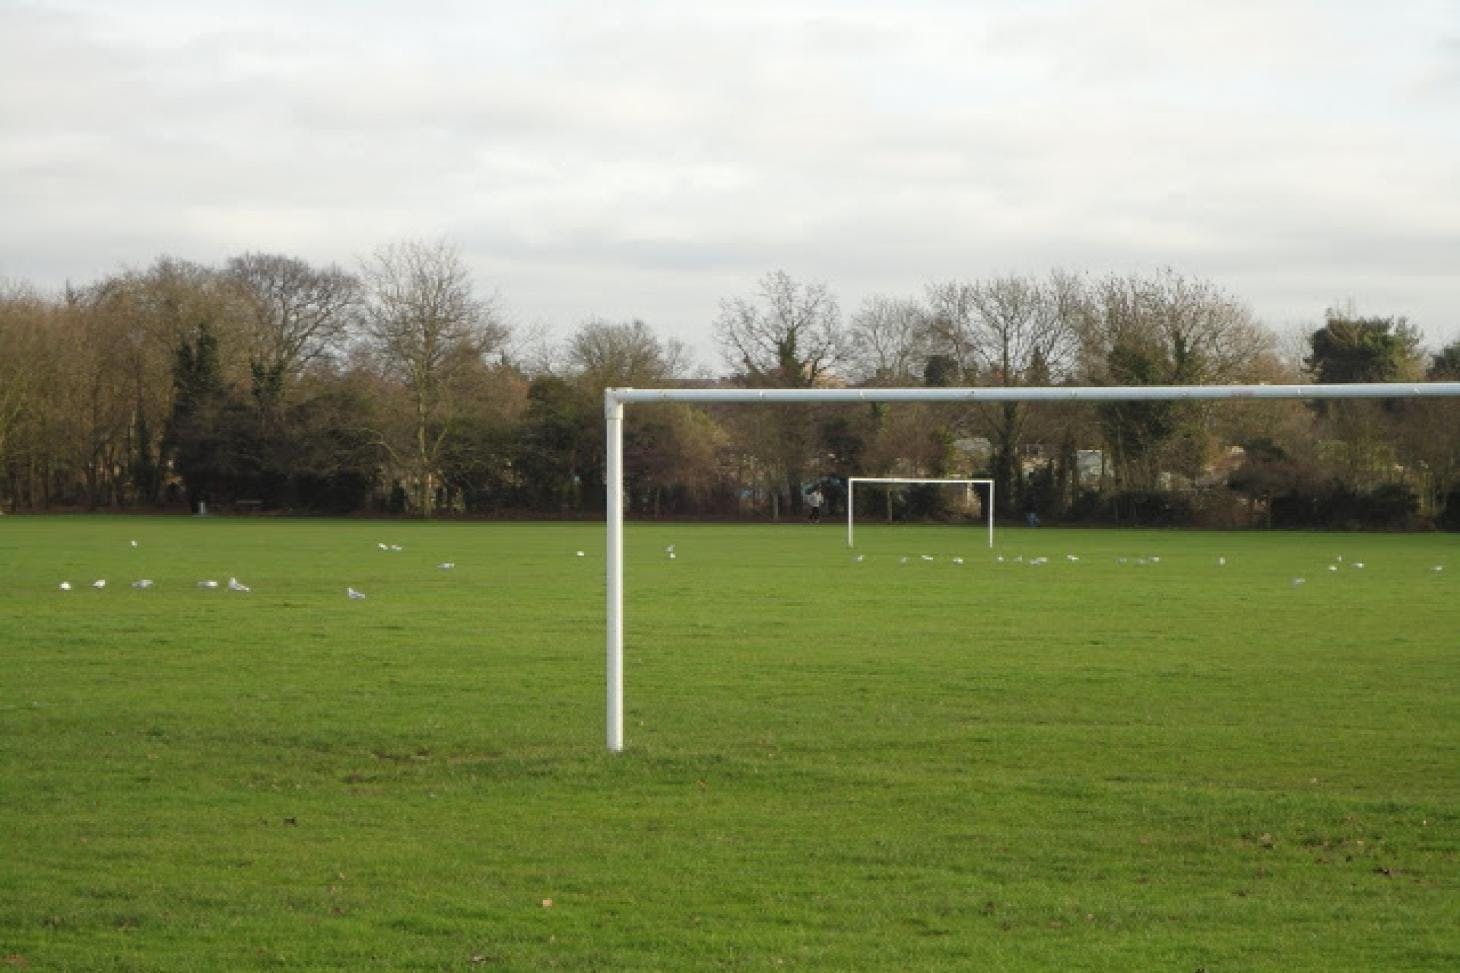 Headstone Manor Recreation Ground 5 a side | Grass football pitch